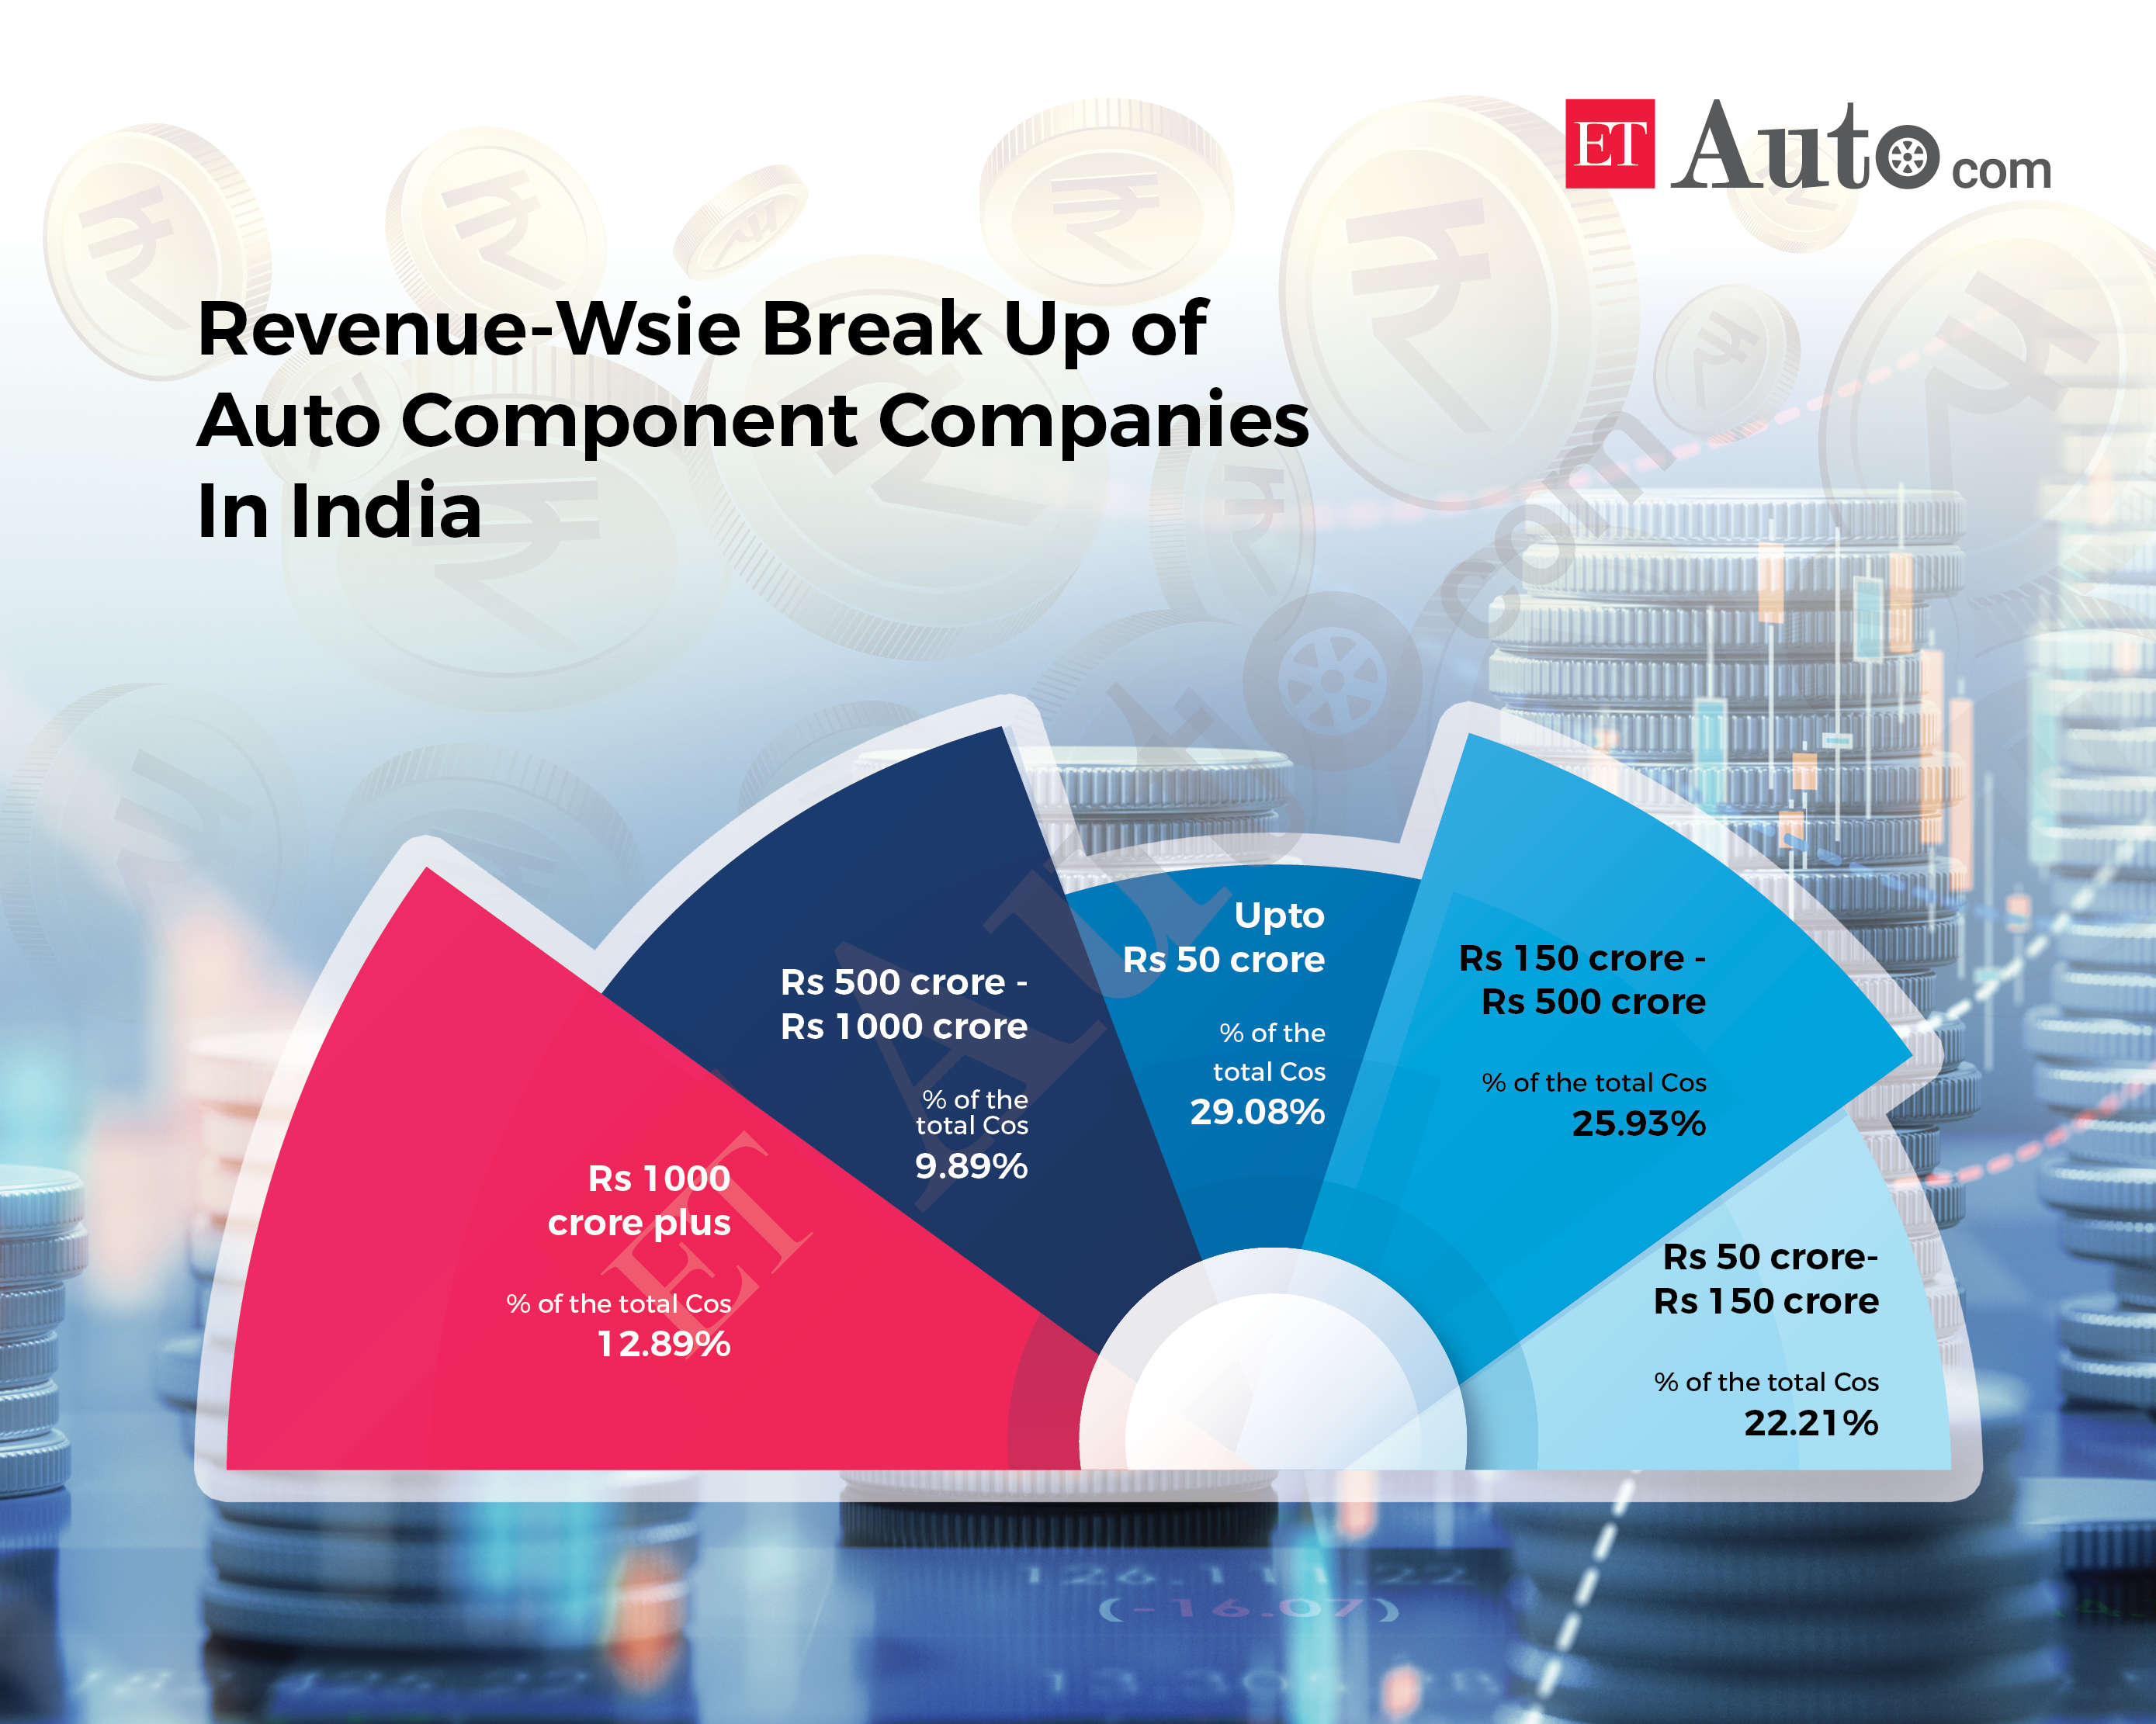 Indian parts makers on average still spend less than 1% of their revenue on R&D, even as these JVs and technical alliances come at a huge cost.